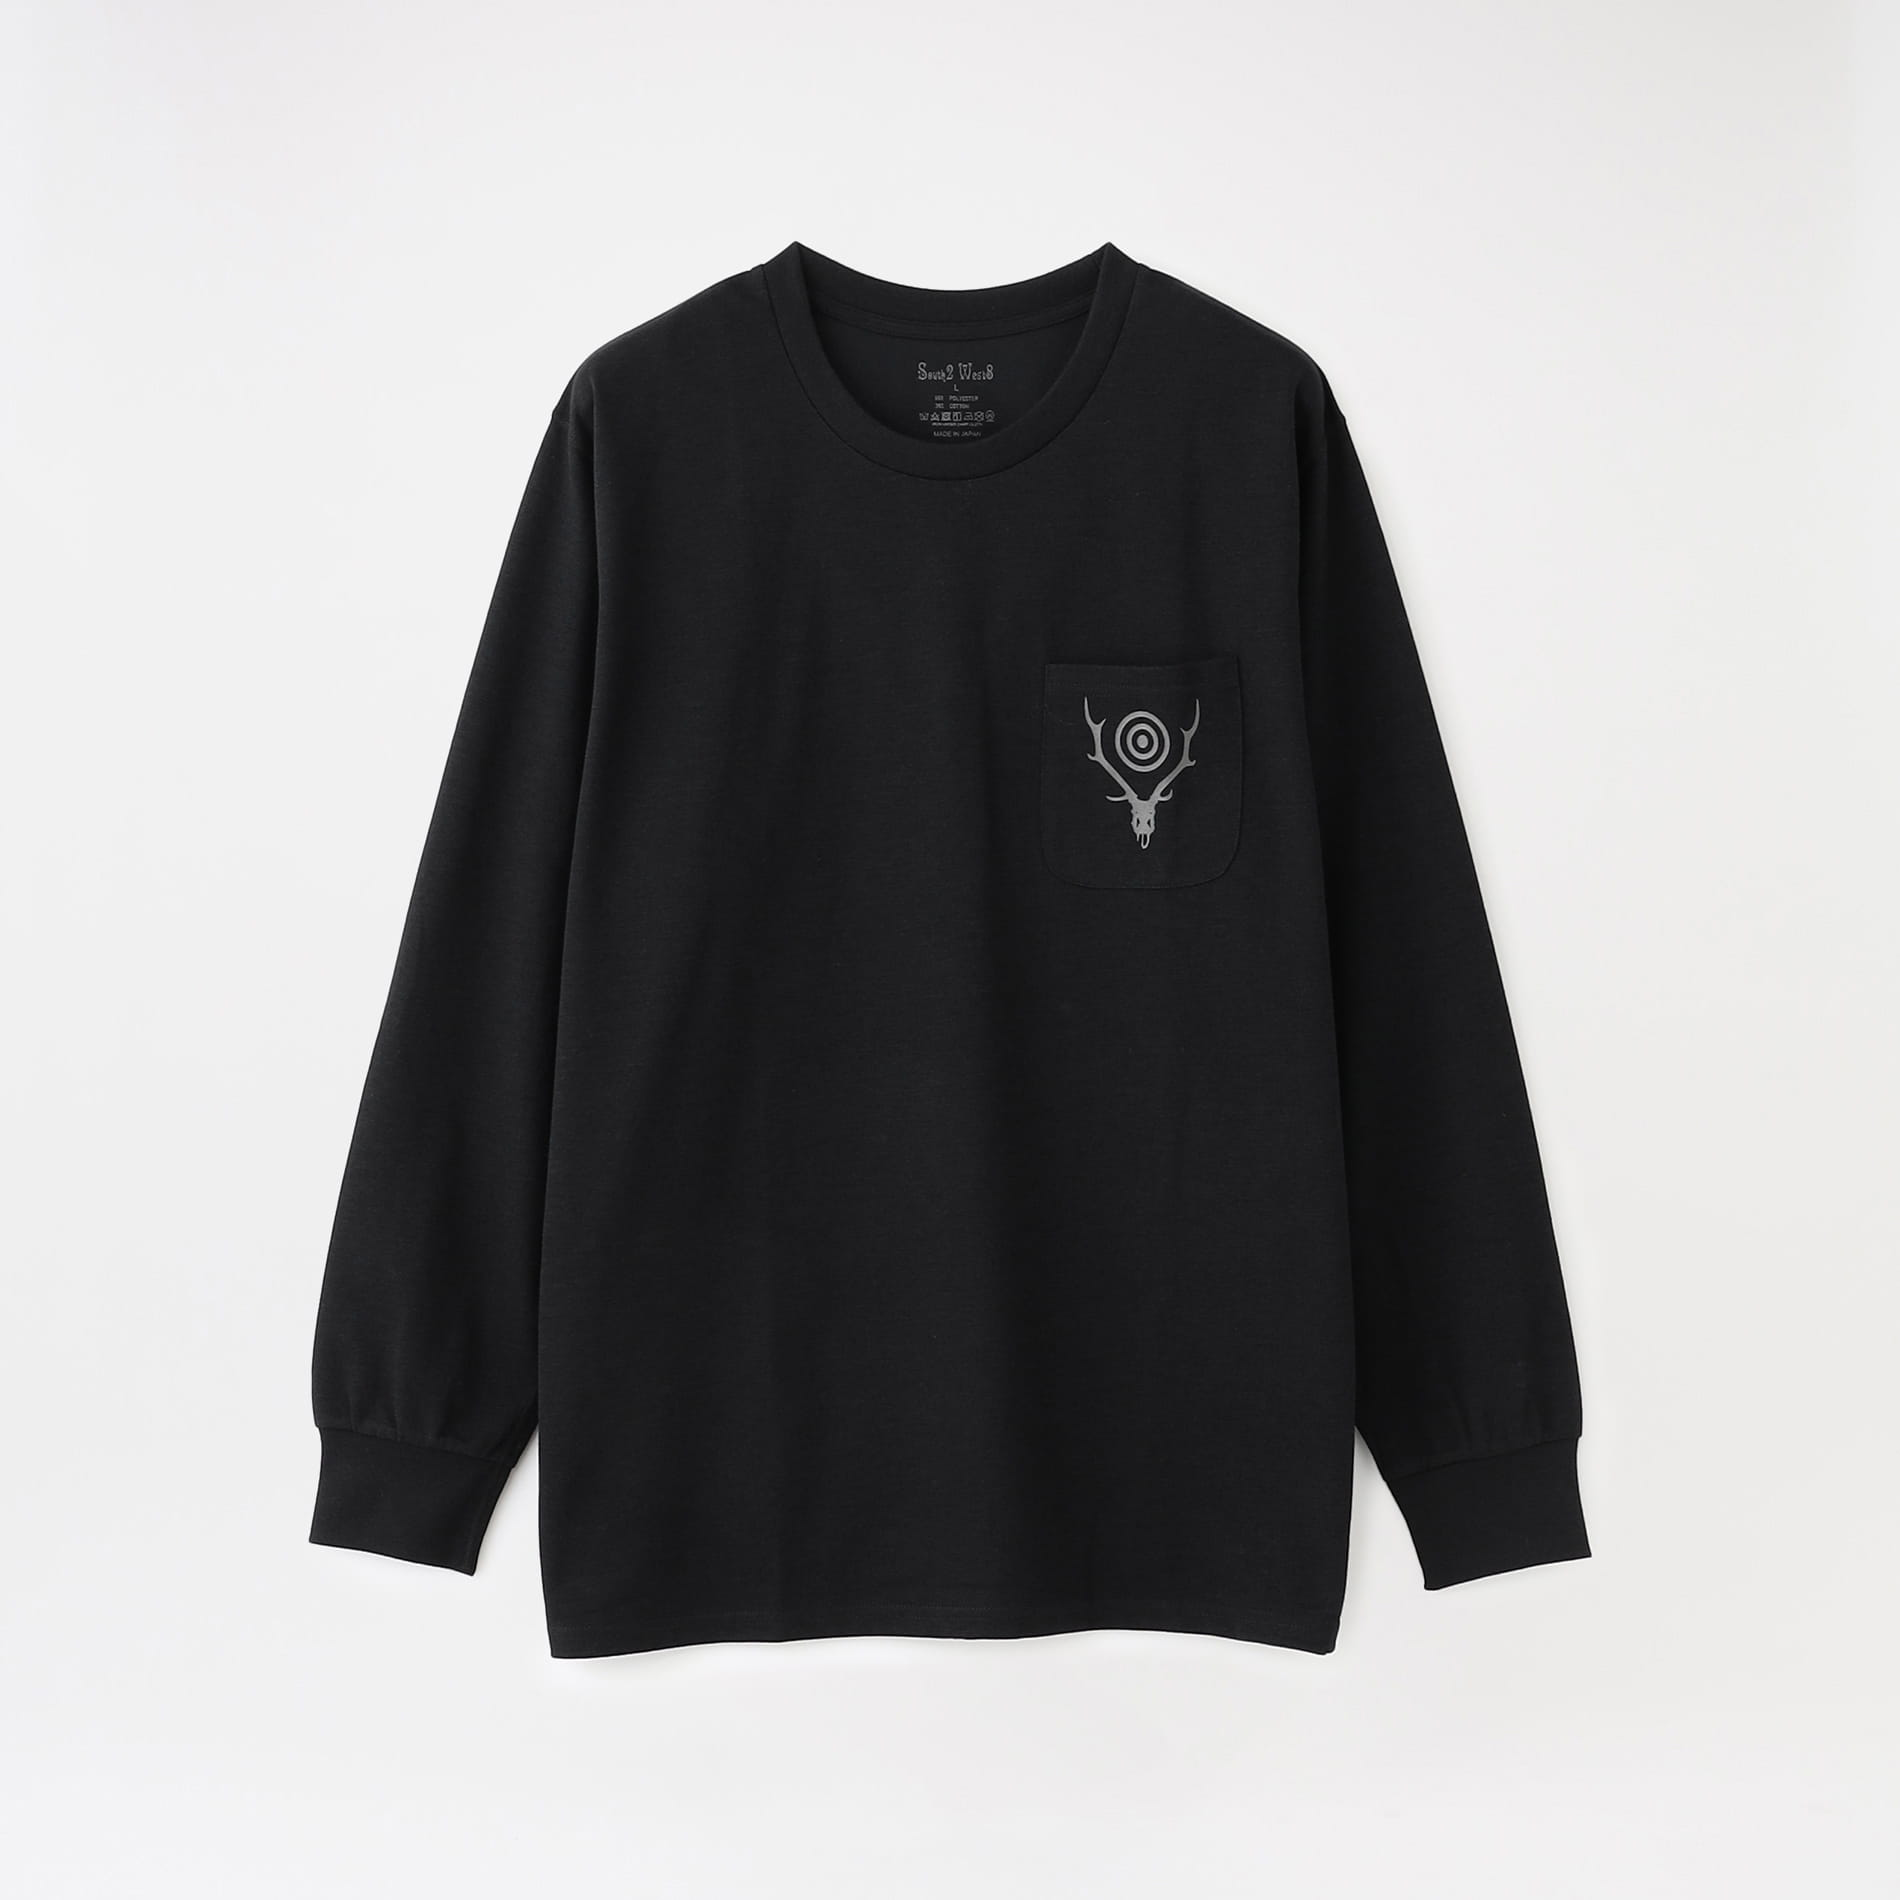 【South2 West8】MEN L/S Round Pocket Tee - Circle Horn JO856